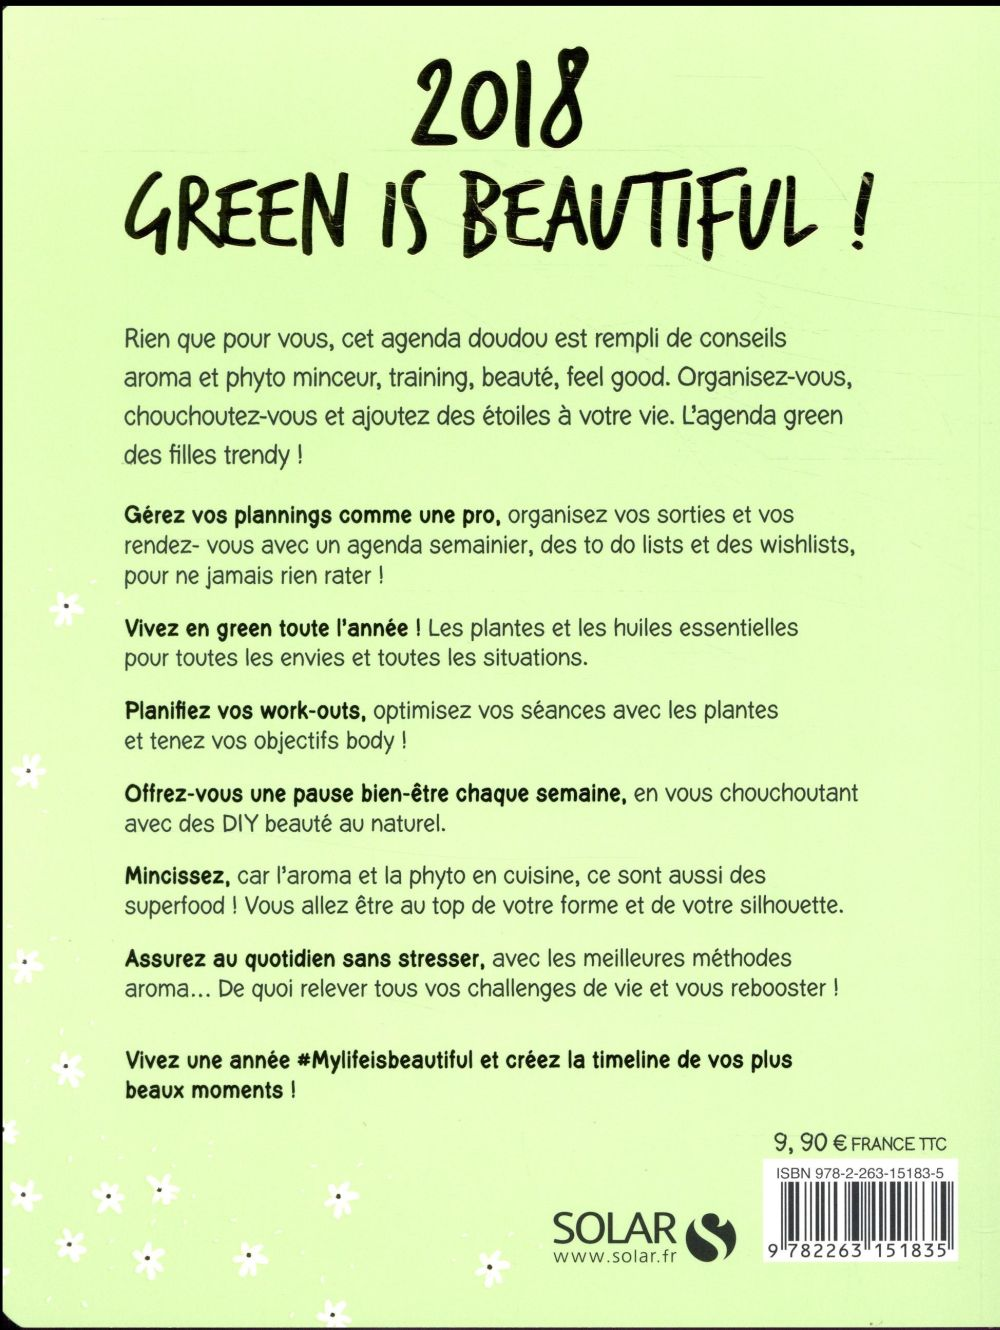 MON CAHIER ; my life is green ; huiles essentielles & plantes (édition 2018)